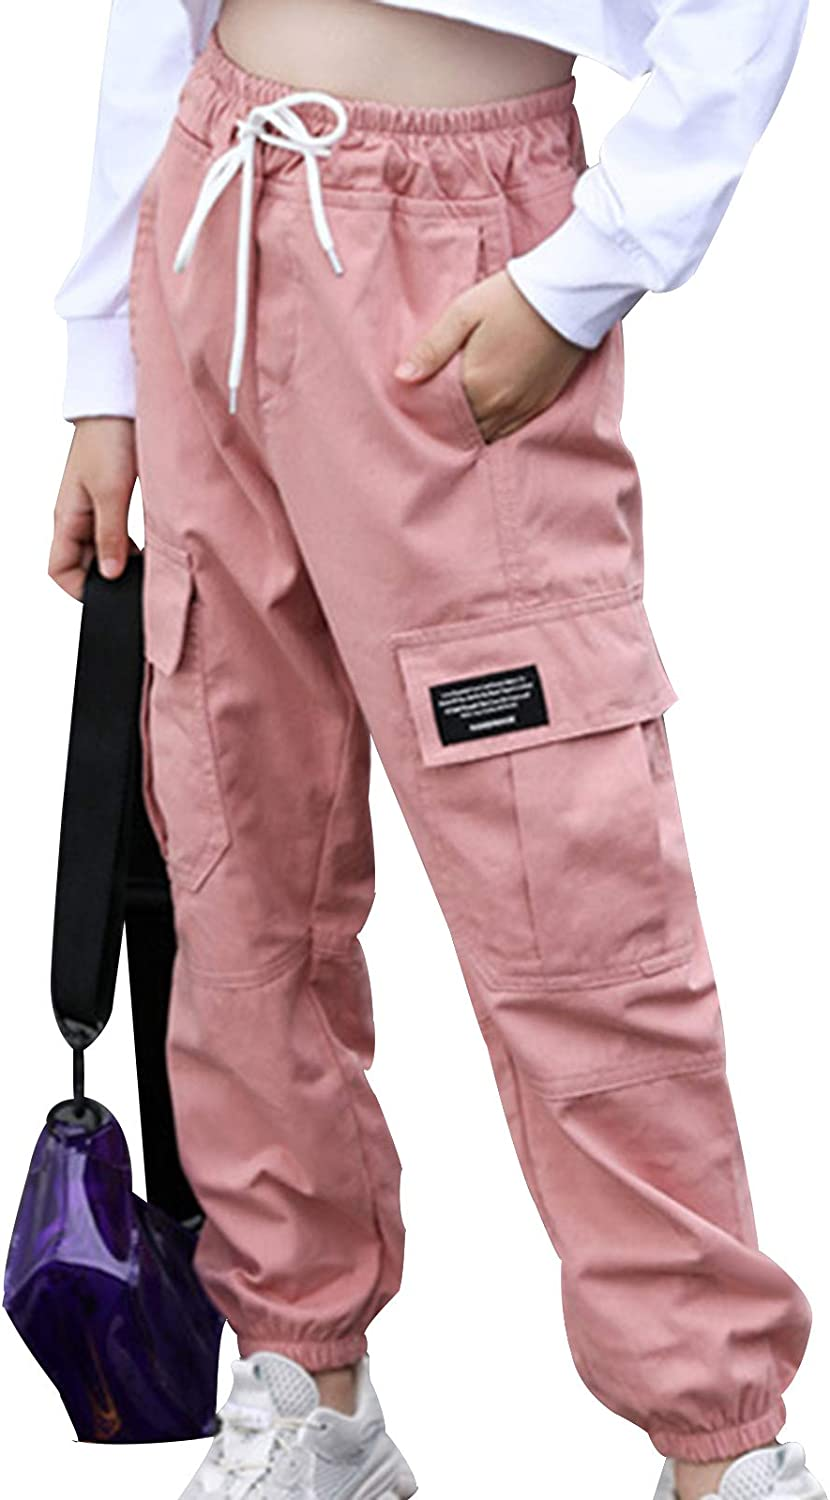 easyforever Kids Girls Cargo Jogger Pants Sports Pockets Trousers Sweatpants Cotton Fashion Bottoms with Drawstring